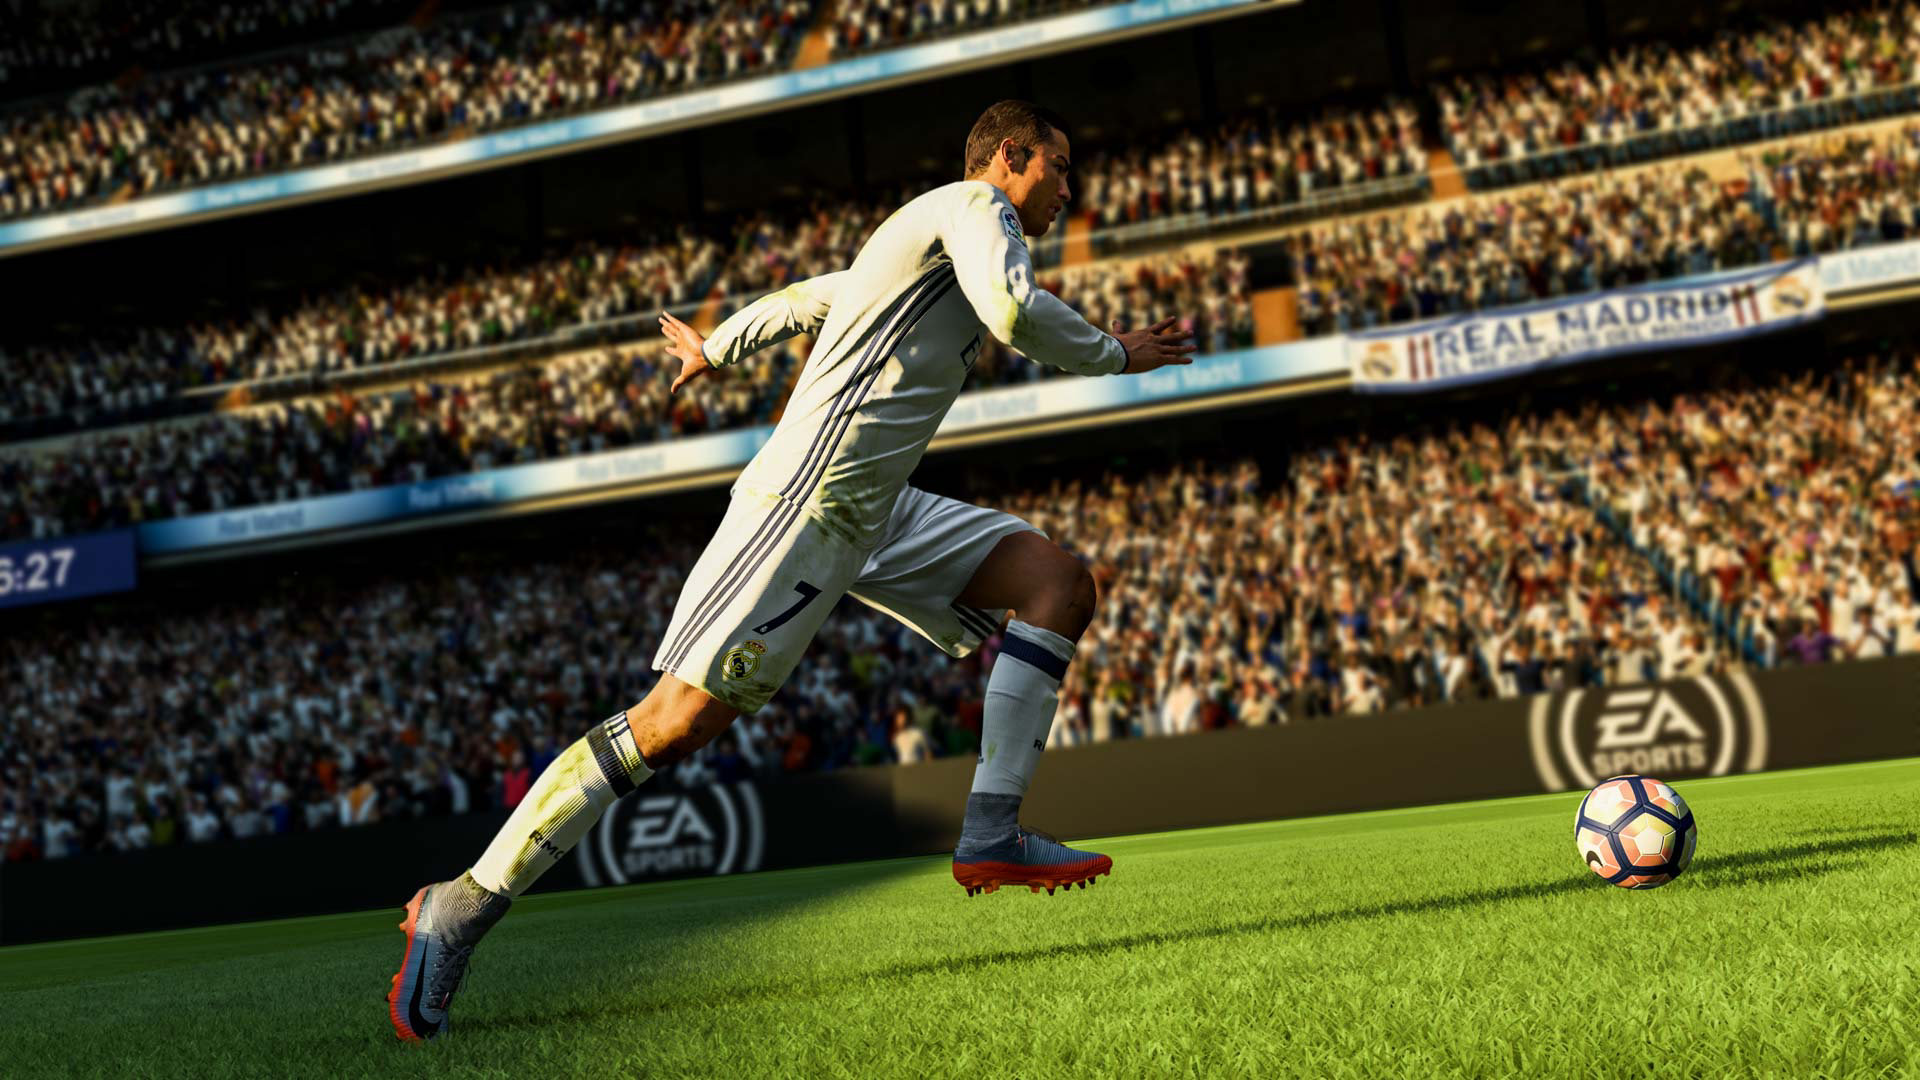 ea-sports-fifa-18-screen-01-us-02jun17?$